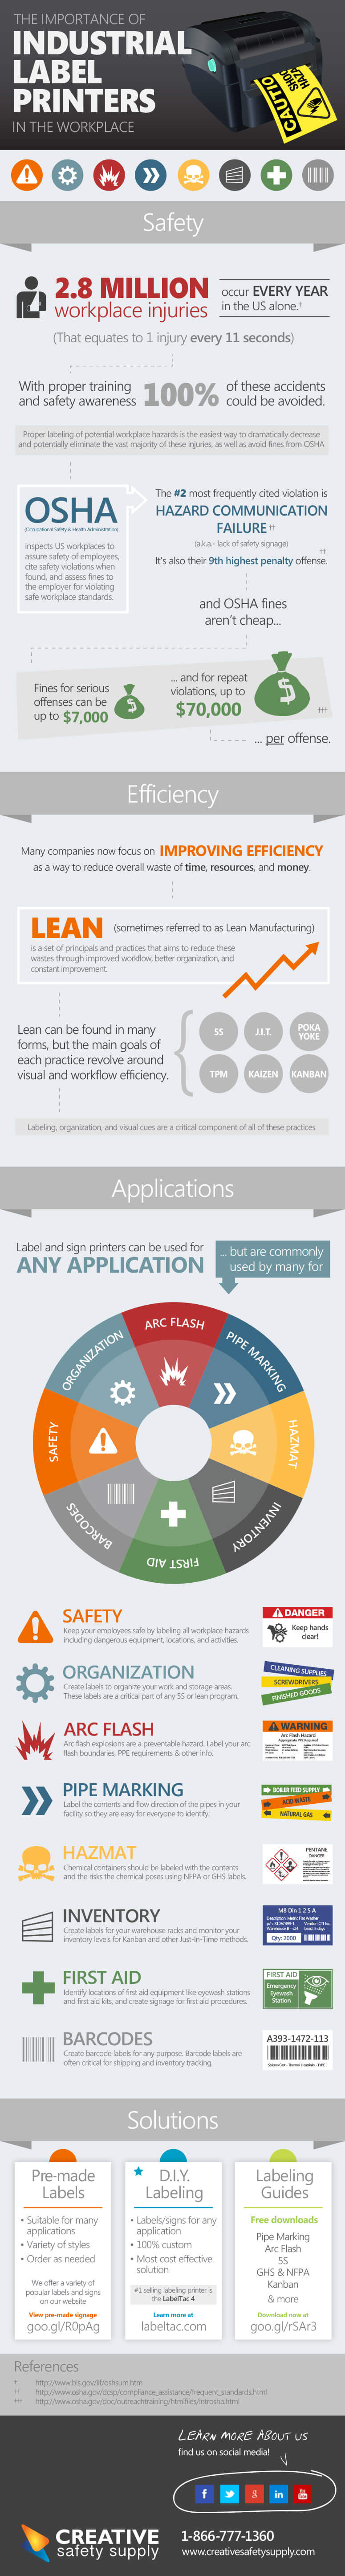 Industrial Label Printers: Infographic